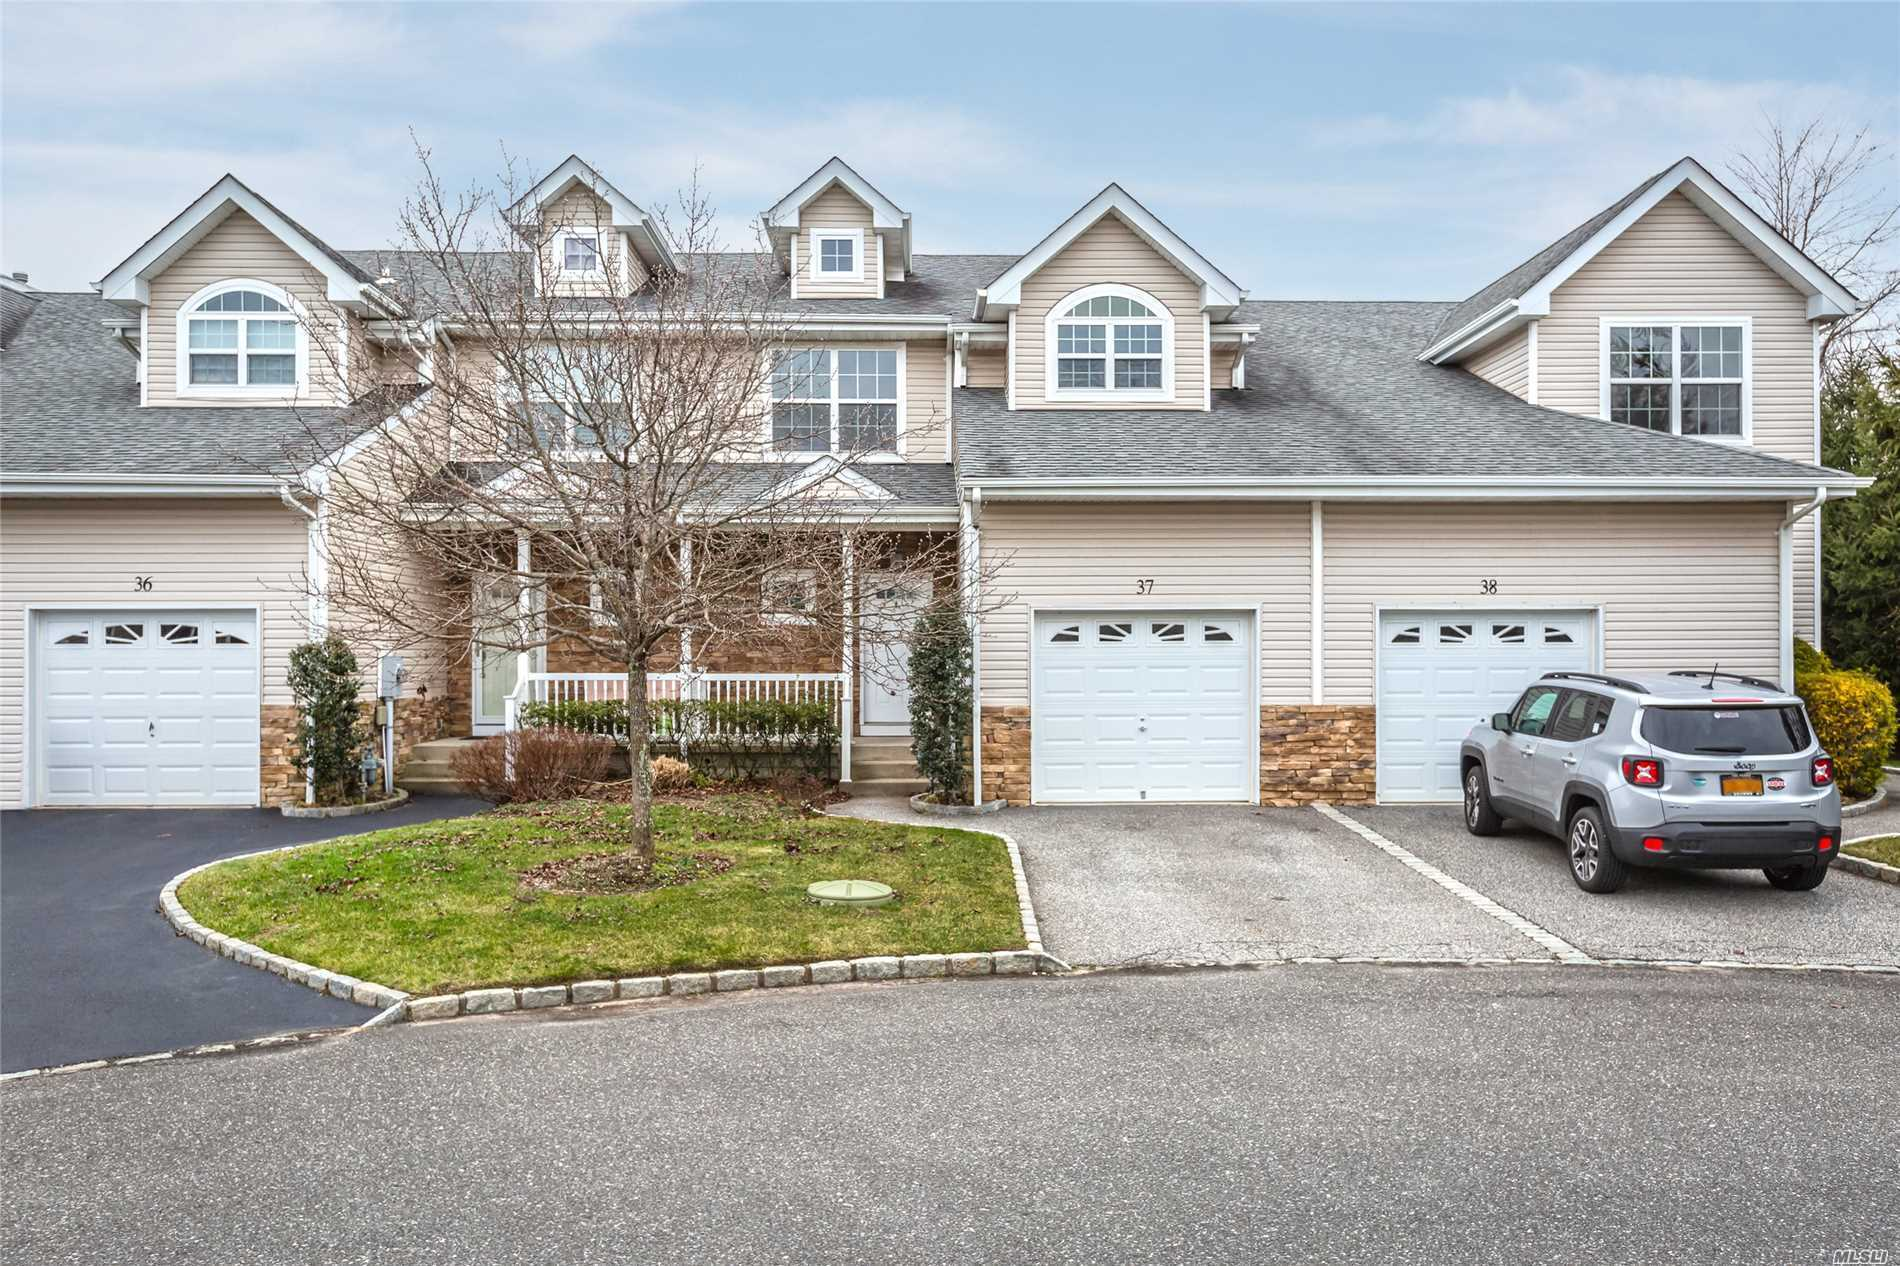 37 Terrace Ln - Patchogue, New York